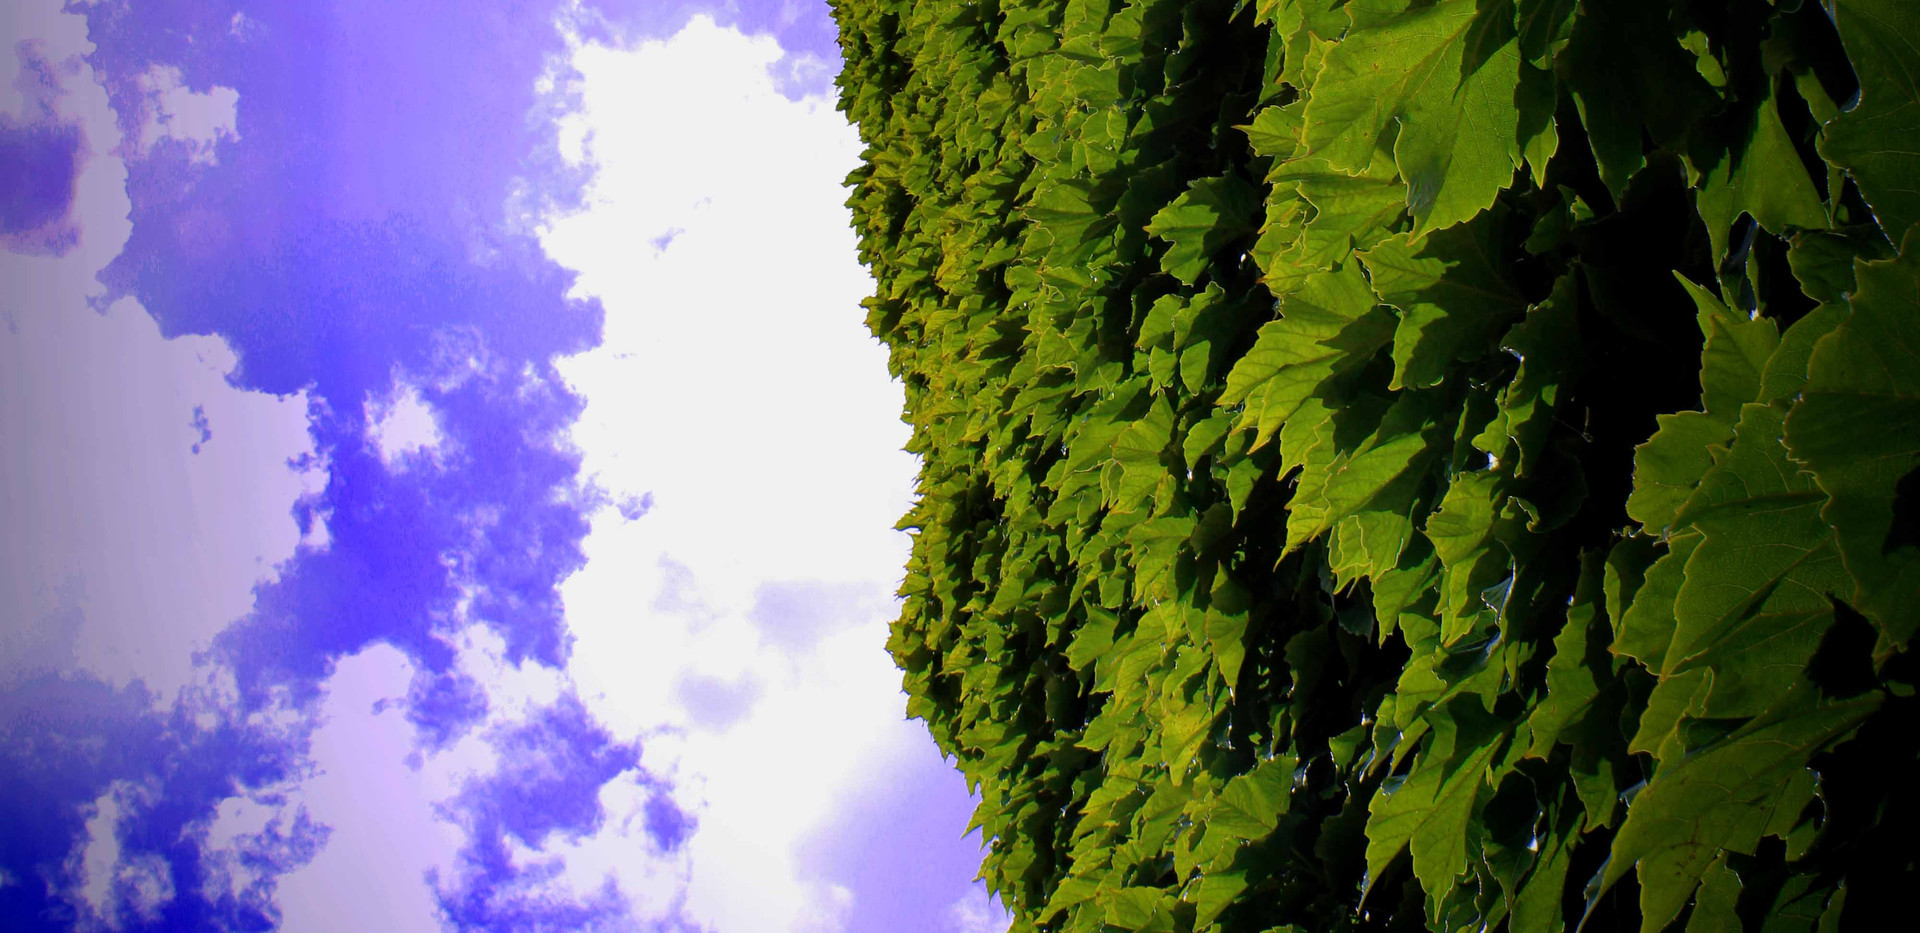 Ivy in Green Park